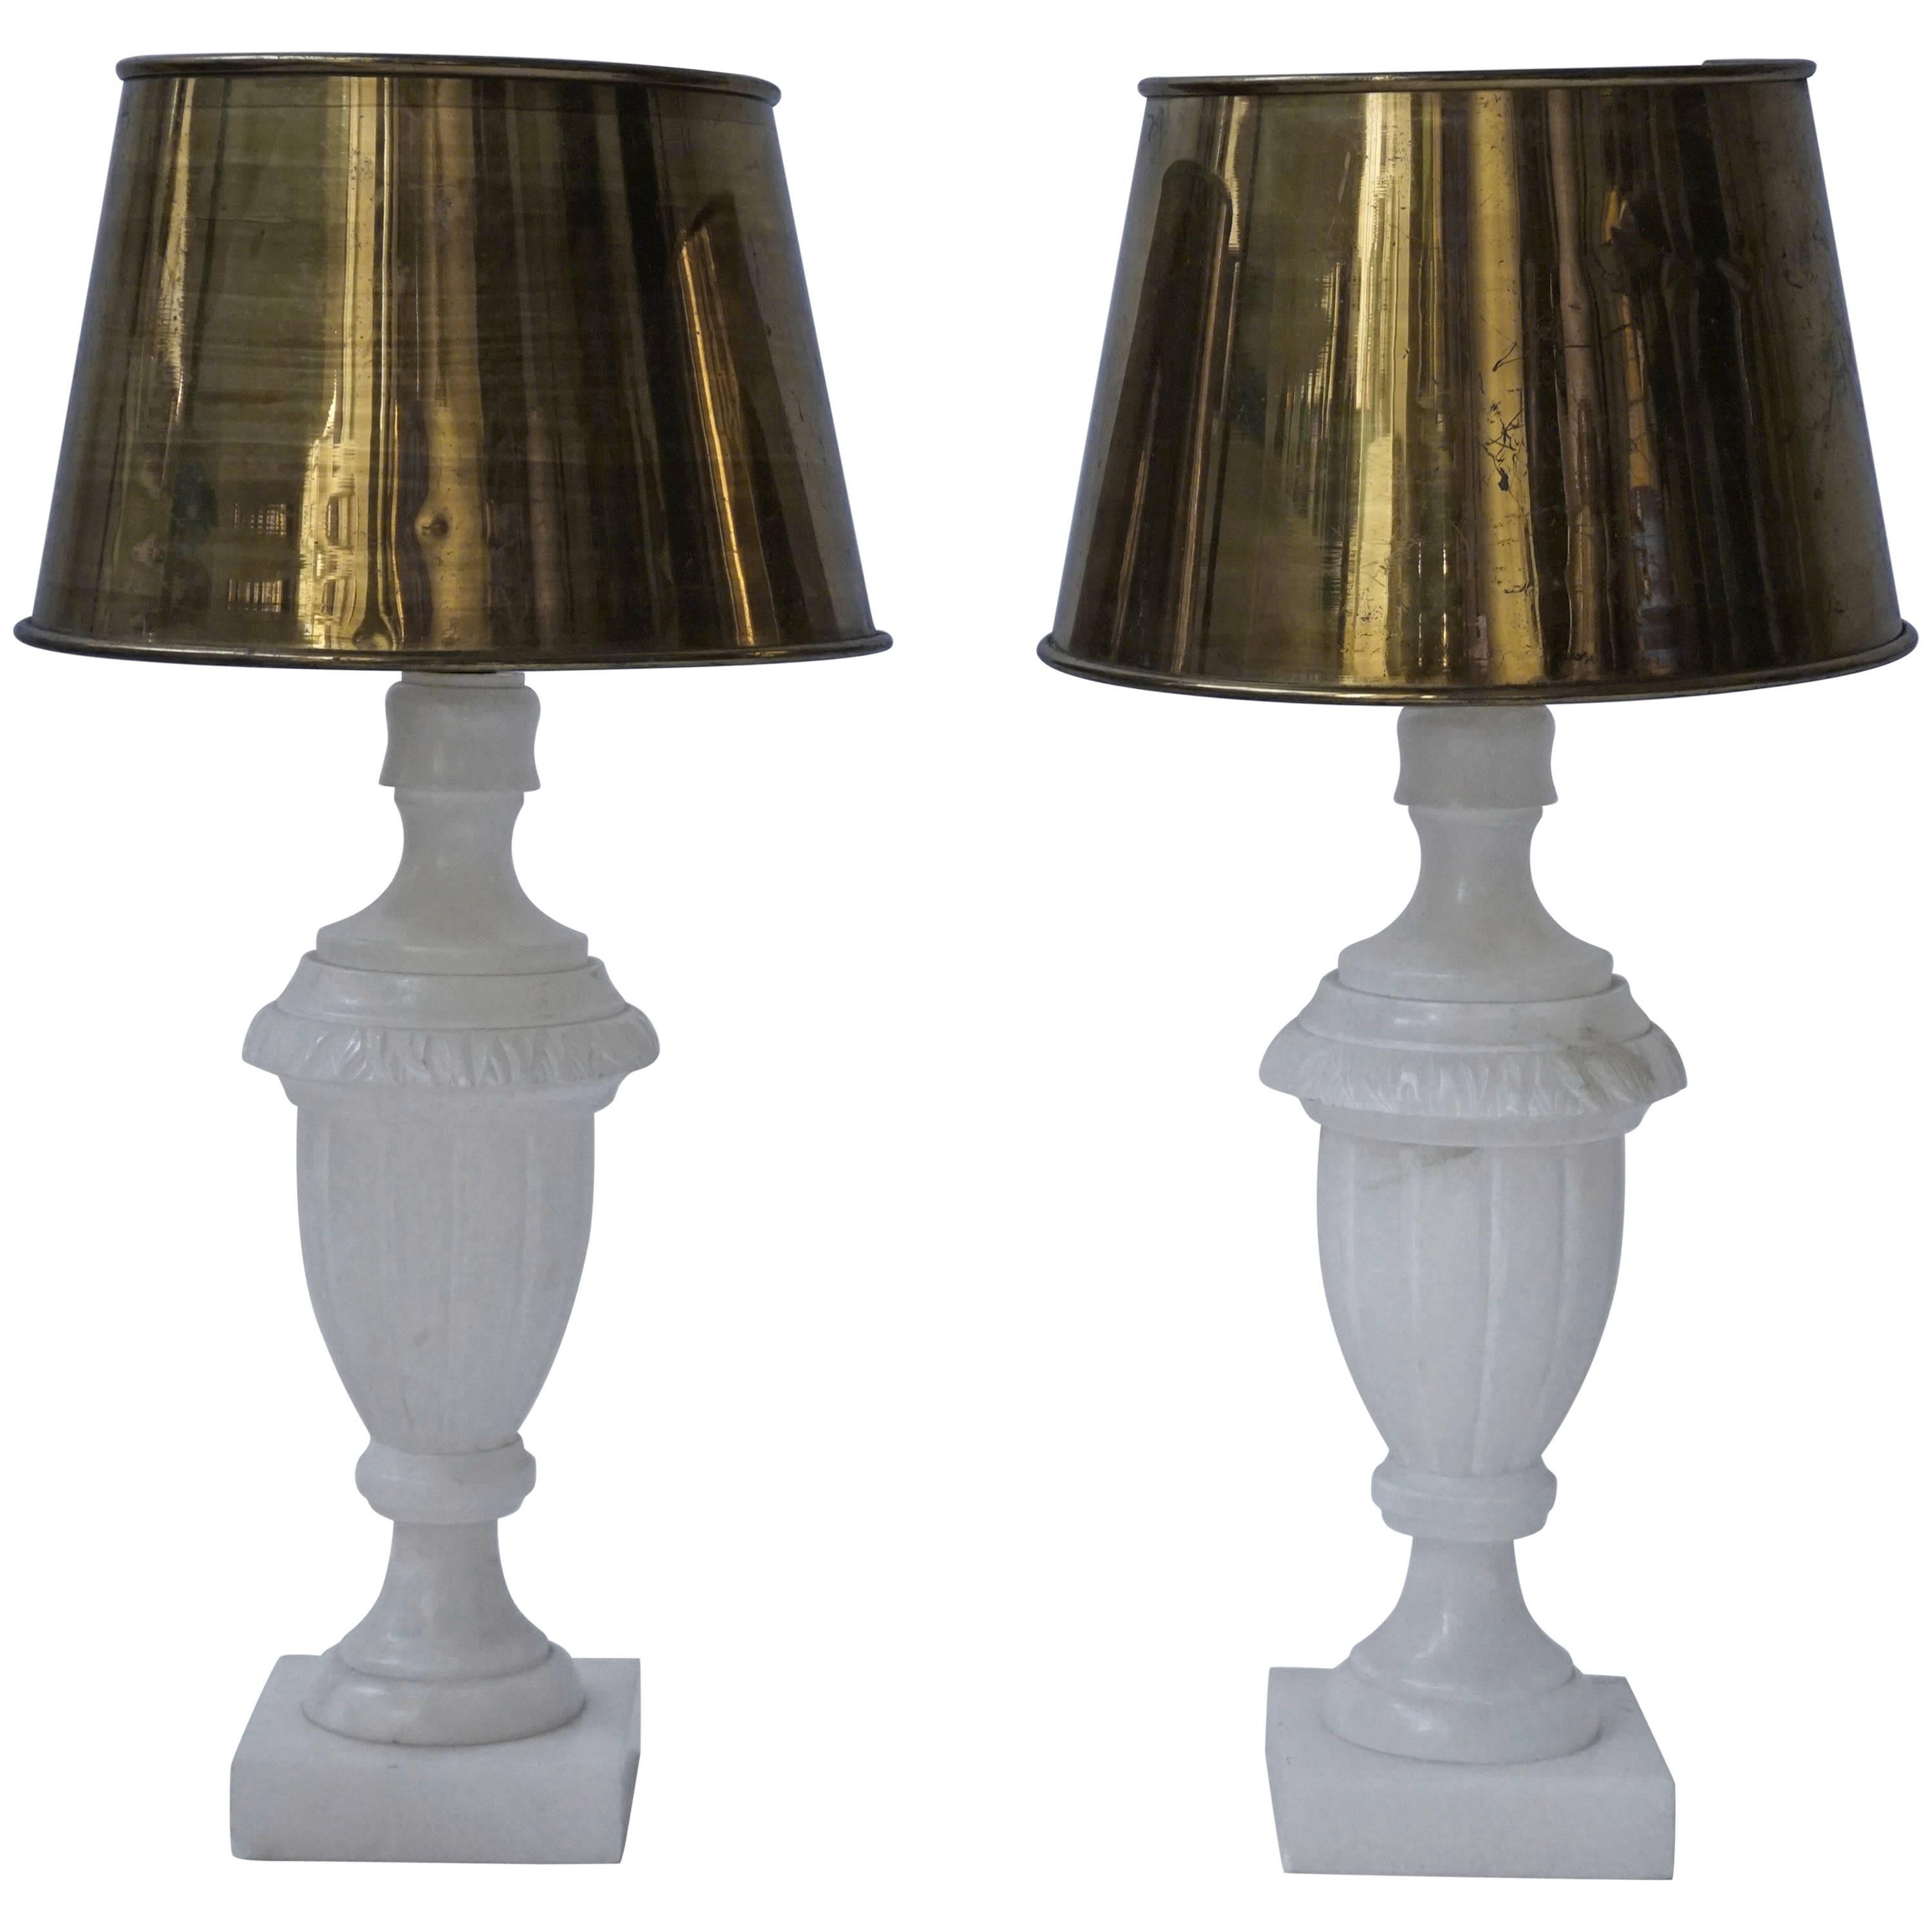 Pair of Alabaster and Copper Table Lamps